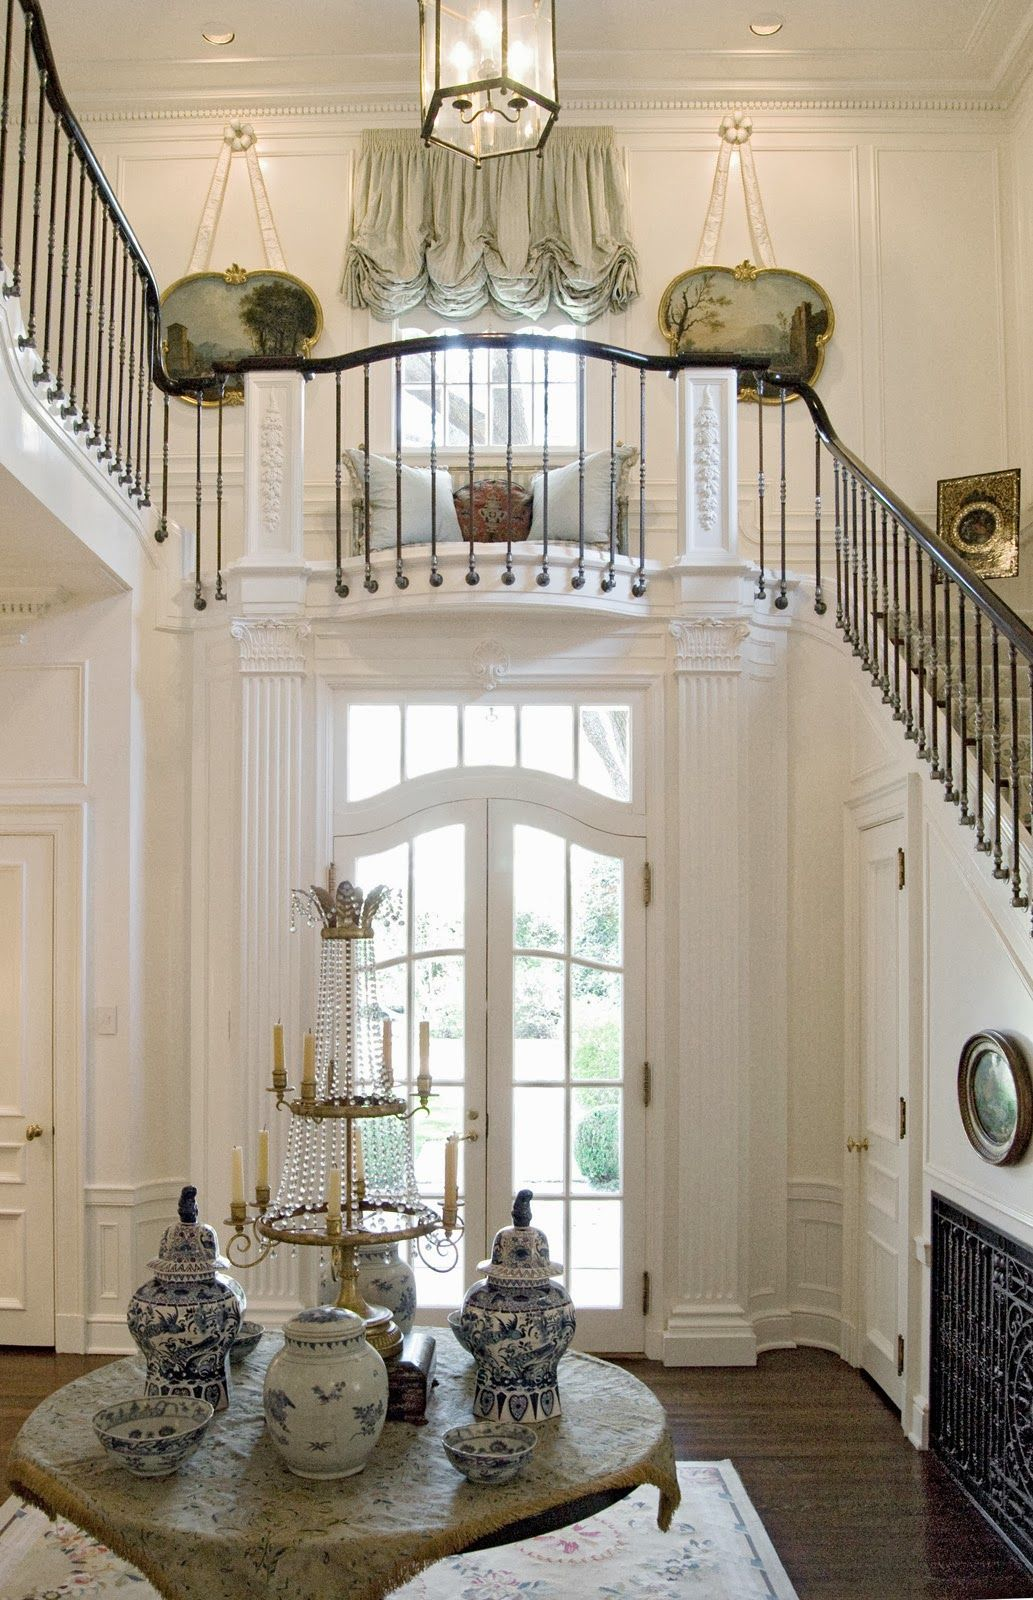 French Doors Under Landing Live The Good Life All About Luxury Lifestyle House Home White Decor